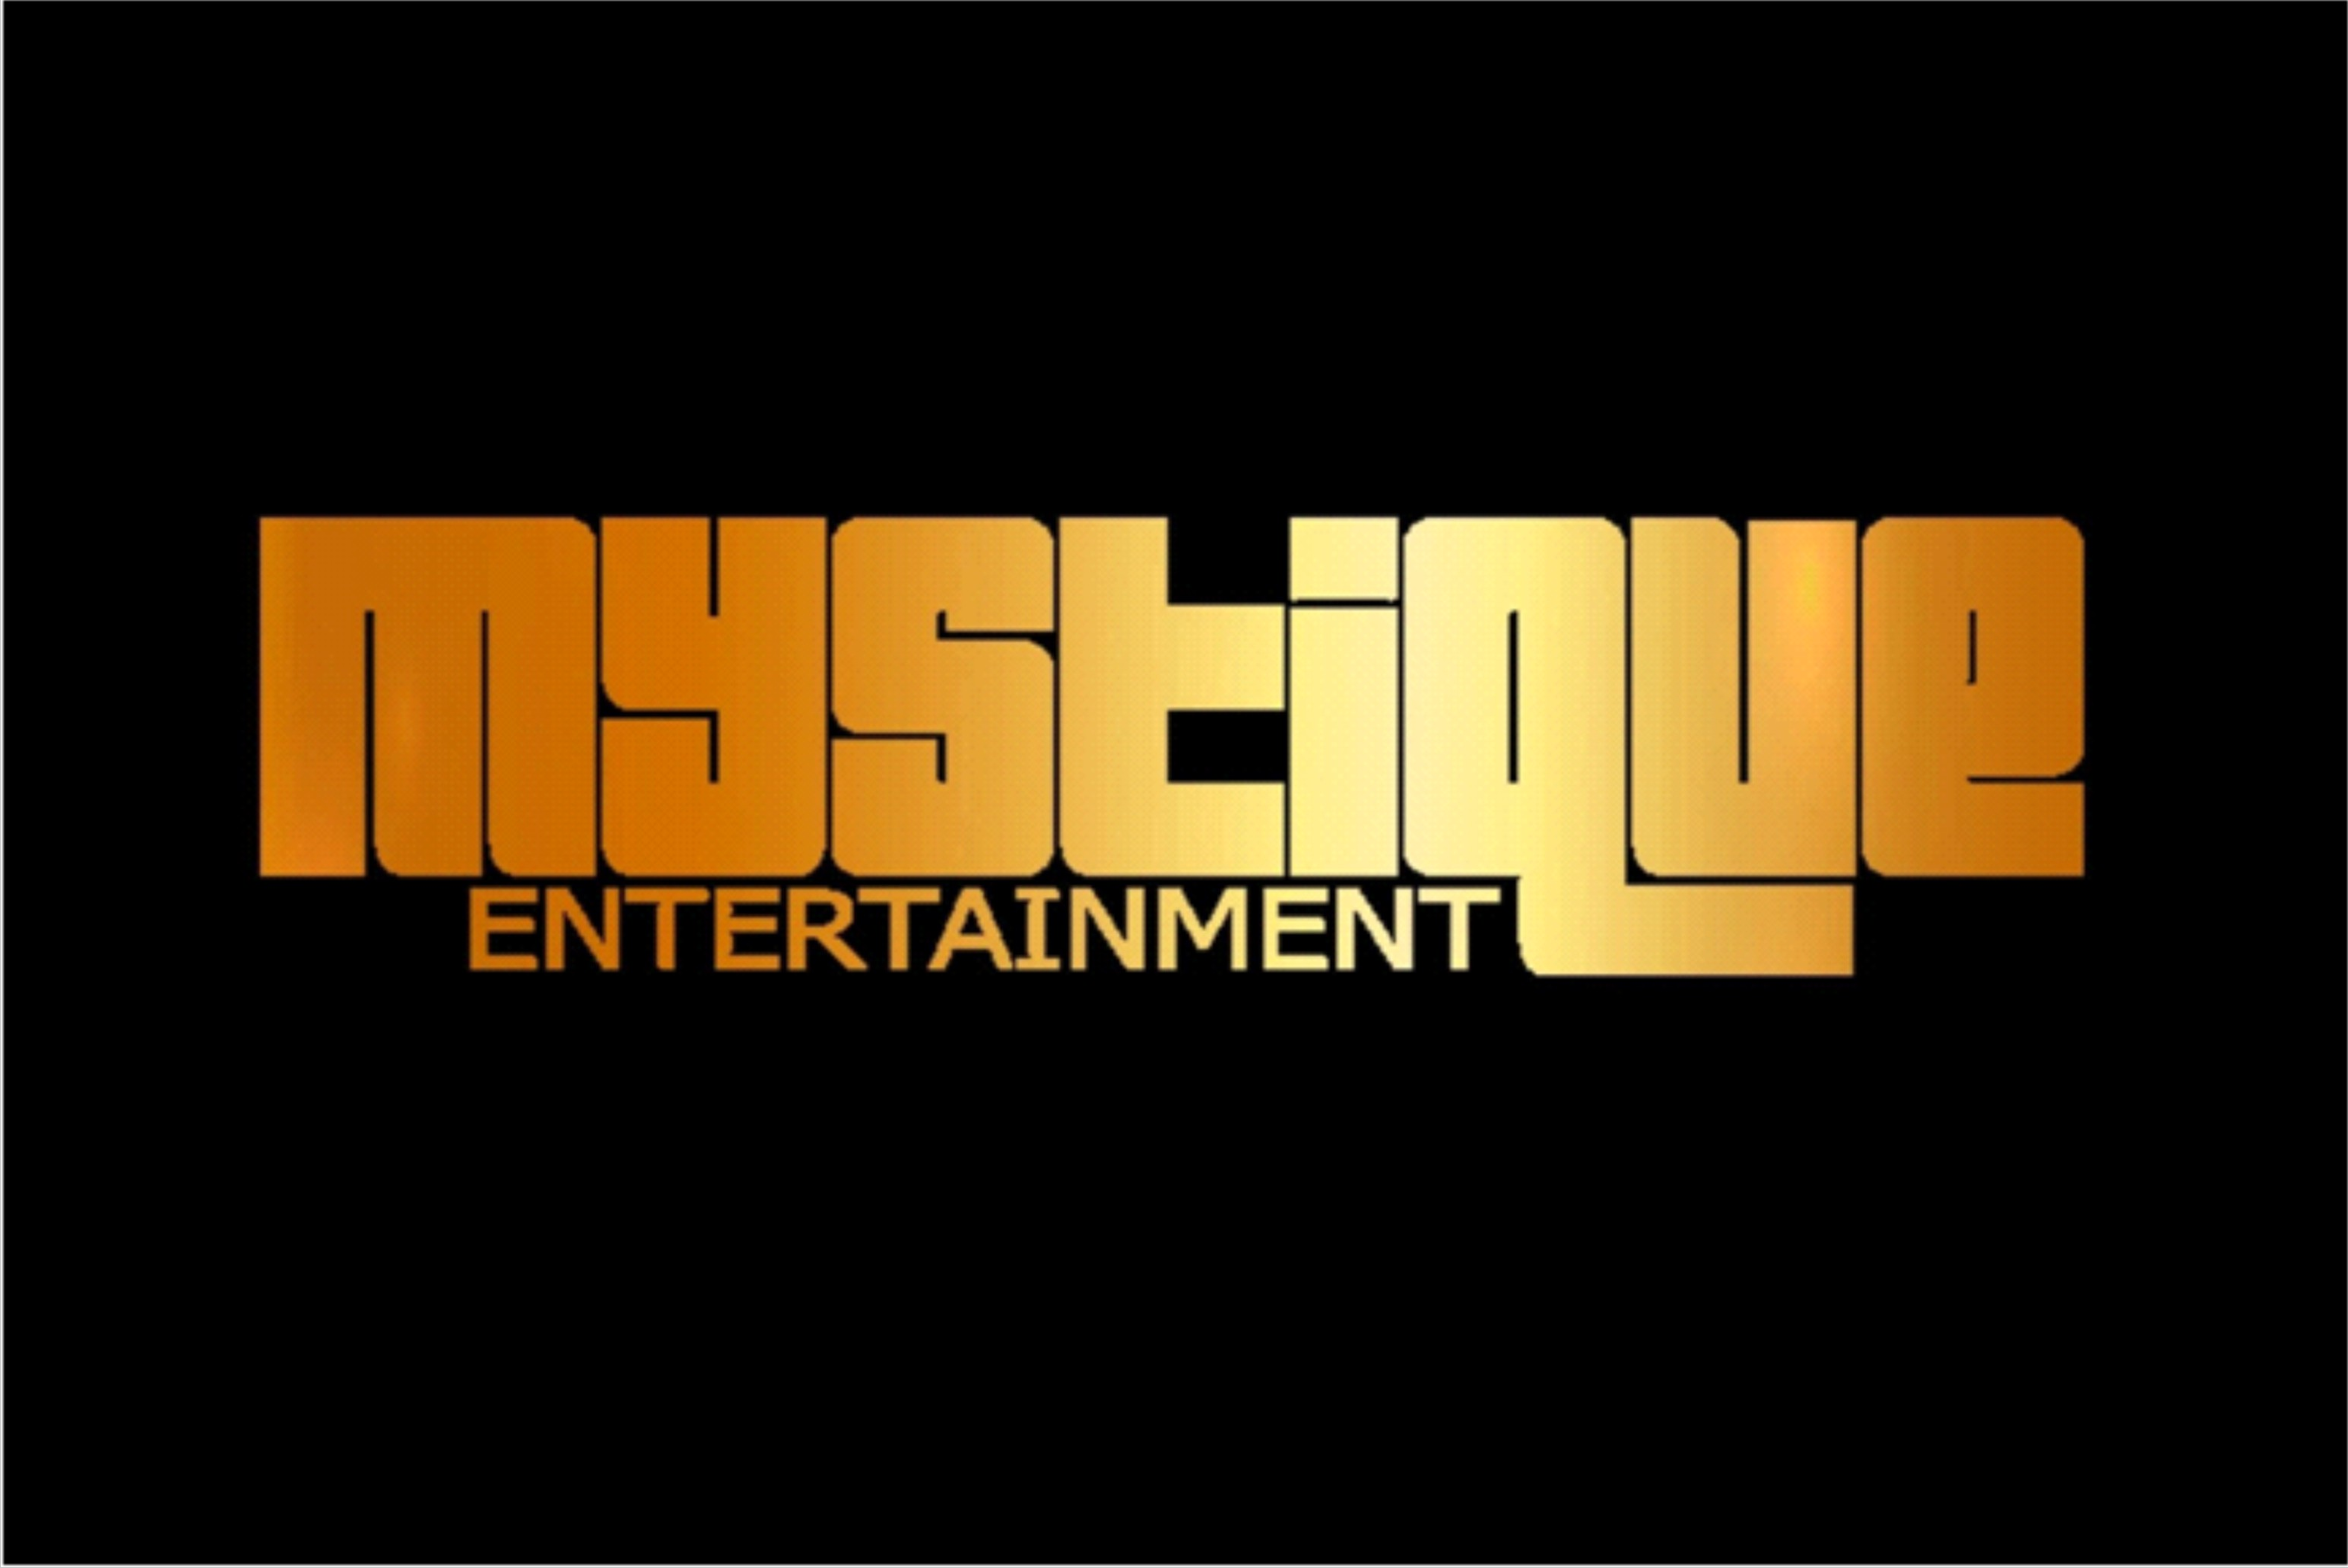 Mystique Entertainment Announces Newly Stocked Top-Quality Products